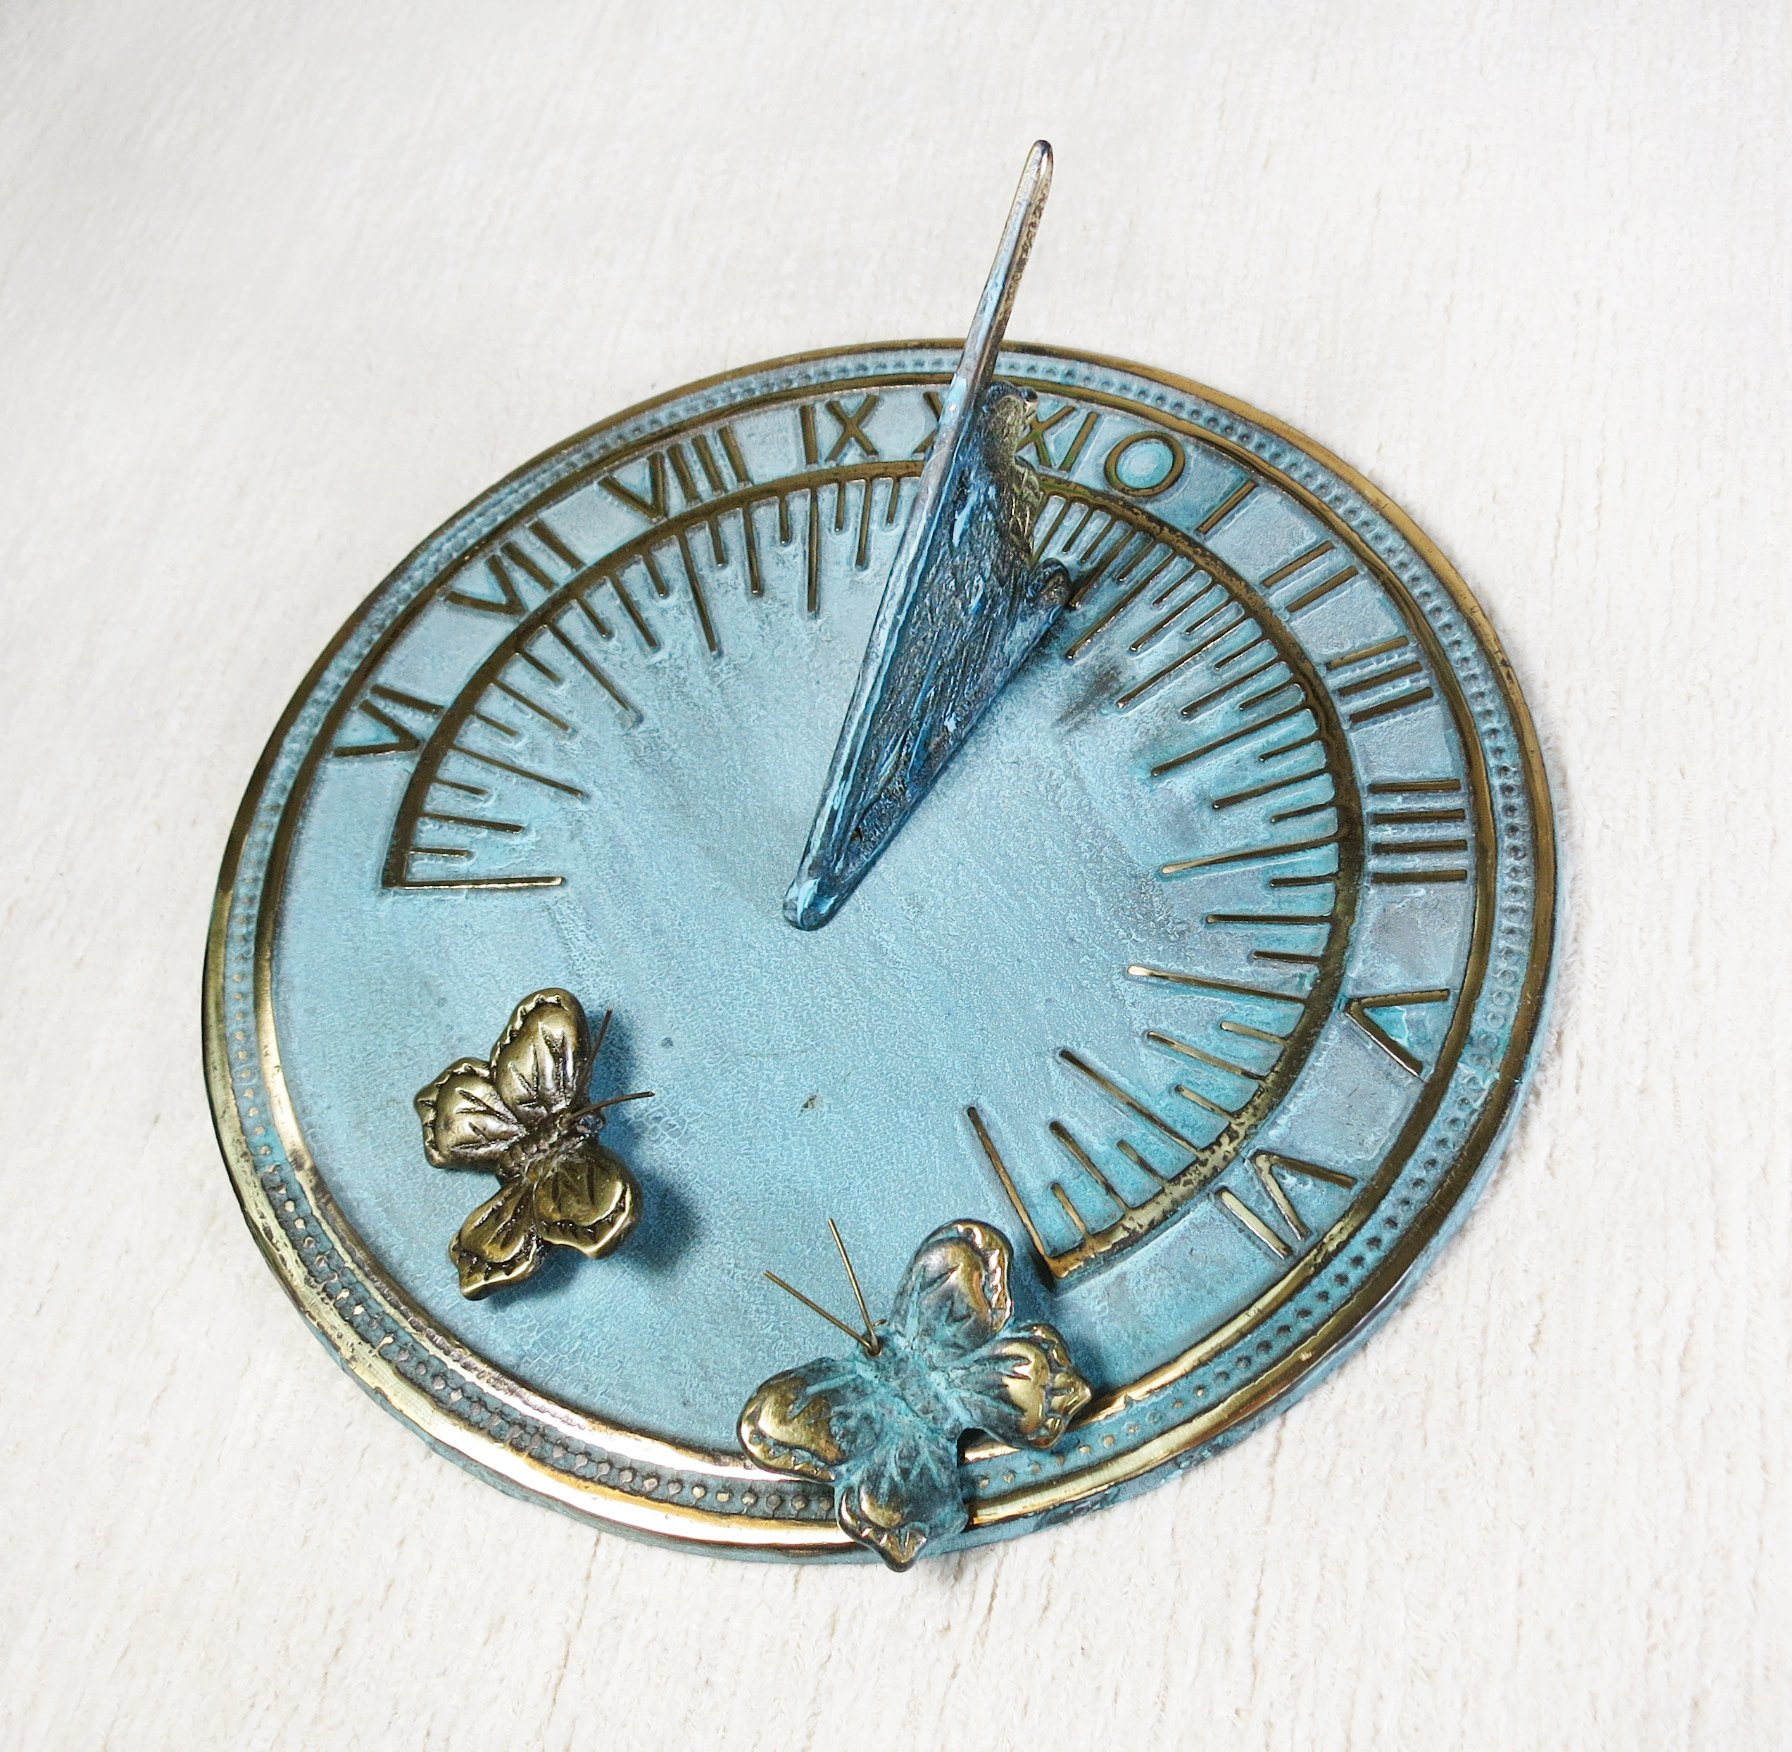 Decorative Brass Sundial 7'' inches wide - with 2 Little Butterflies